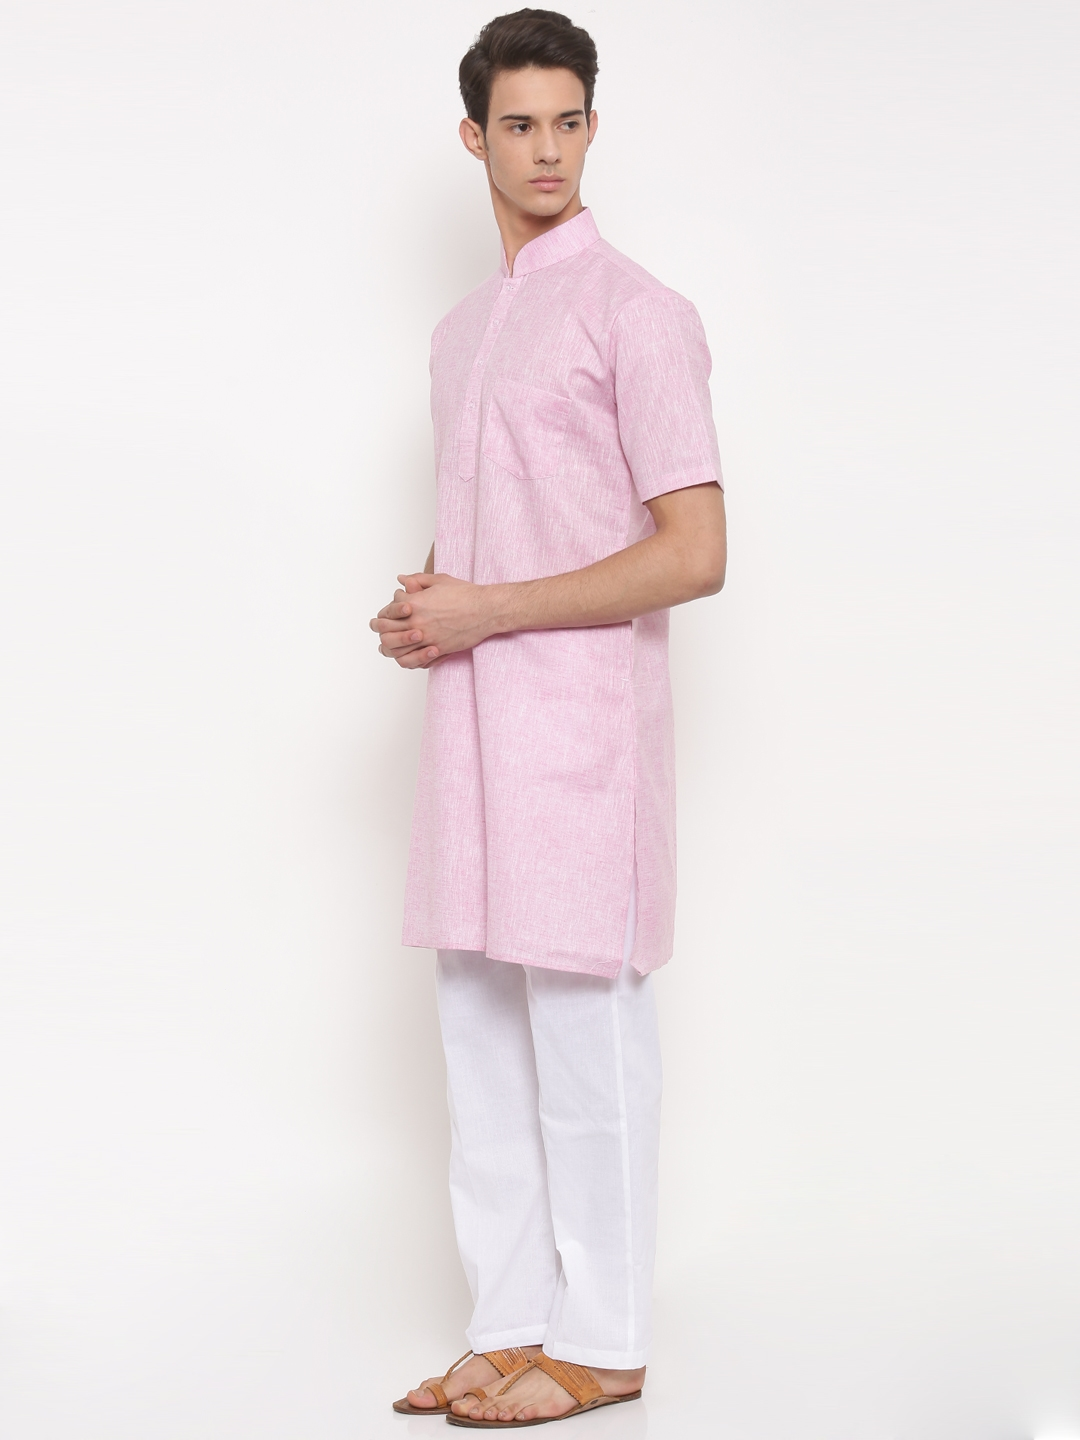 fe88af3cee7 Buy RG DESIGNERS Men Pink & White Solid Kurta With Pyjamas - Kurta ...